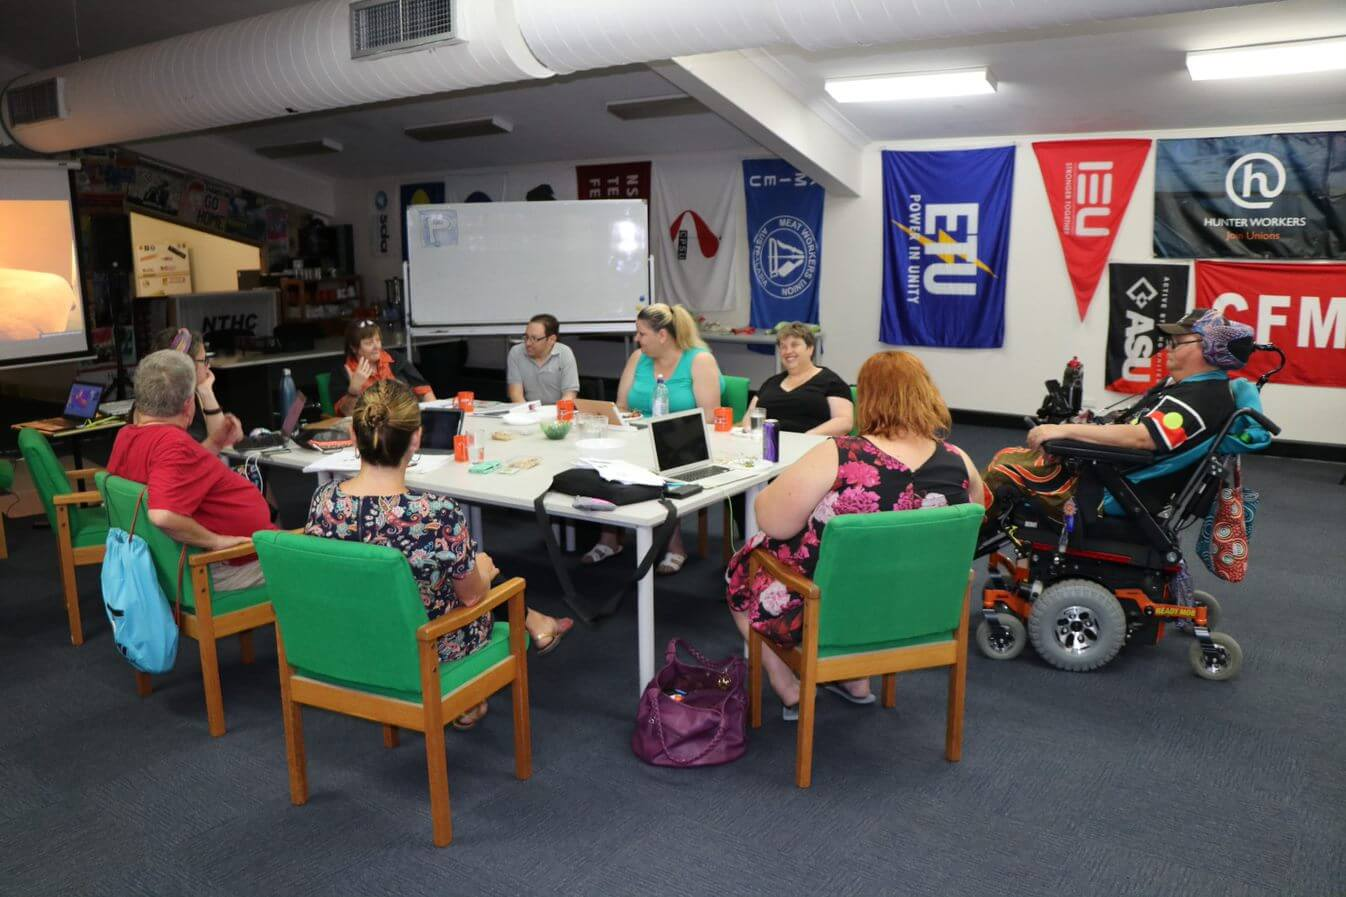 People with disabilities meeting